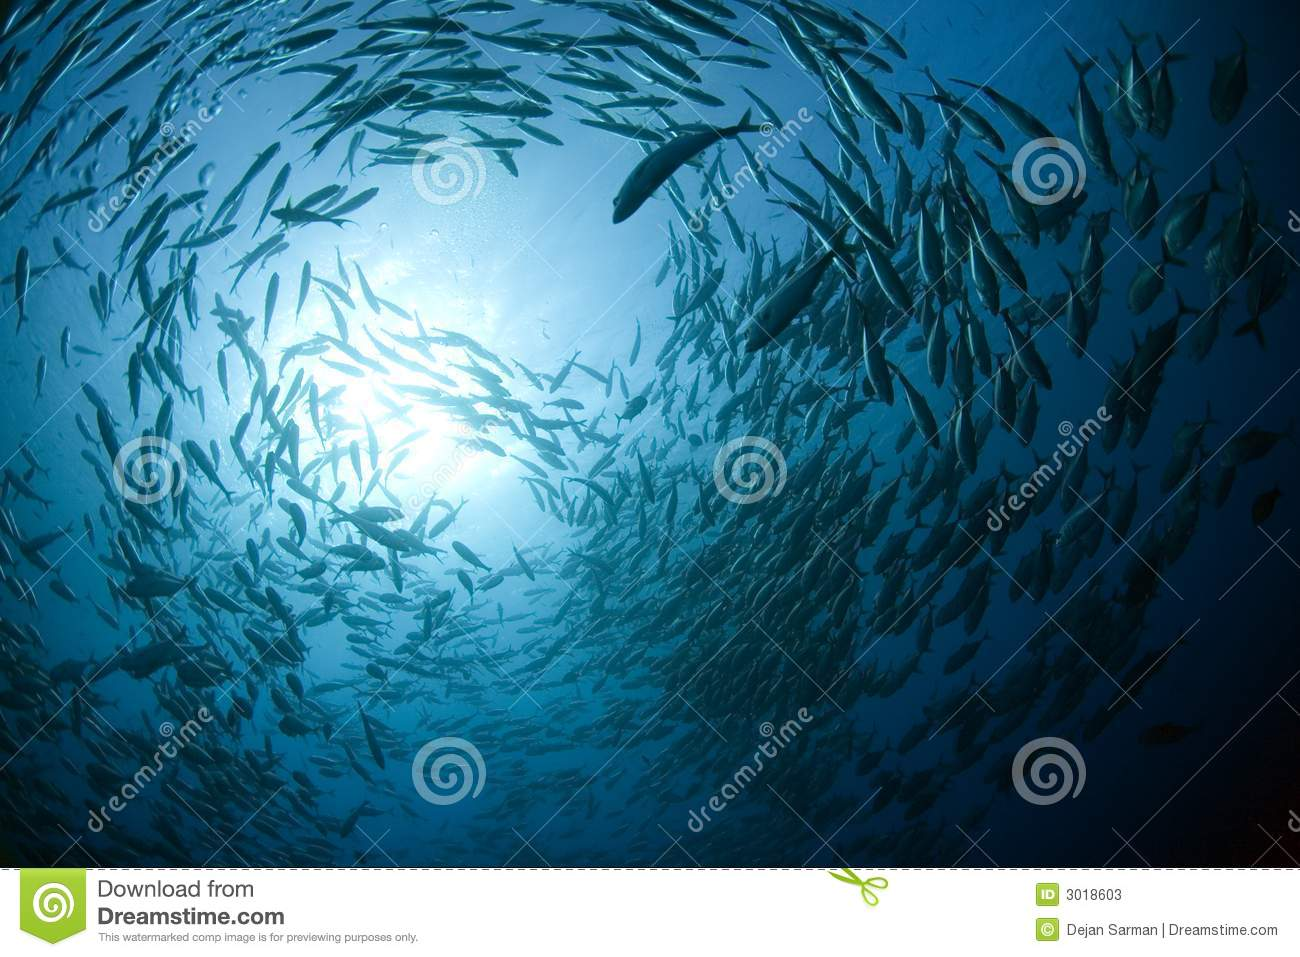 large school of fish swim in circles in the ocean, with some ...